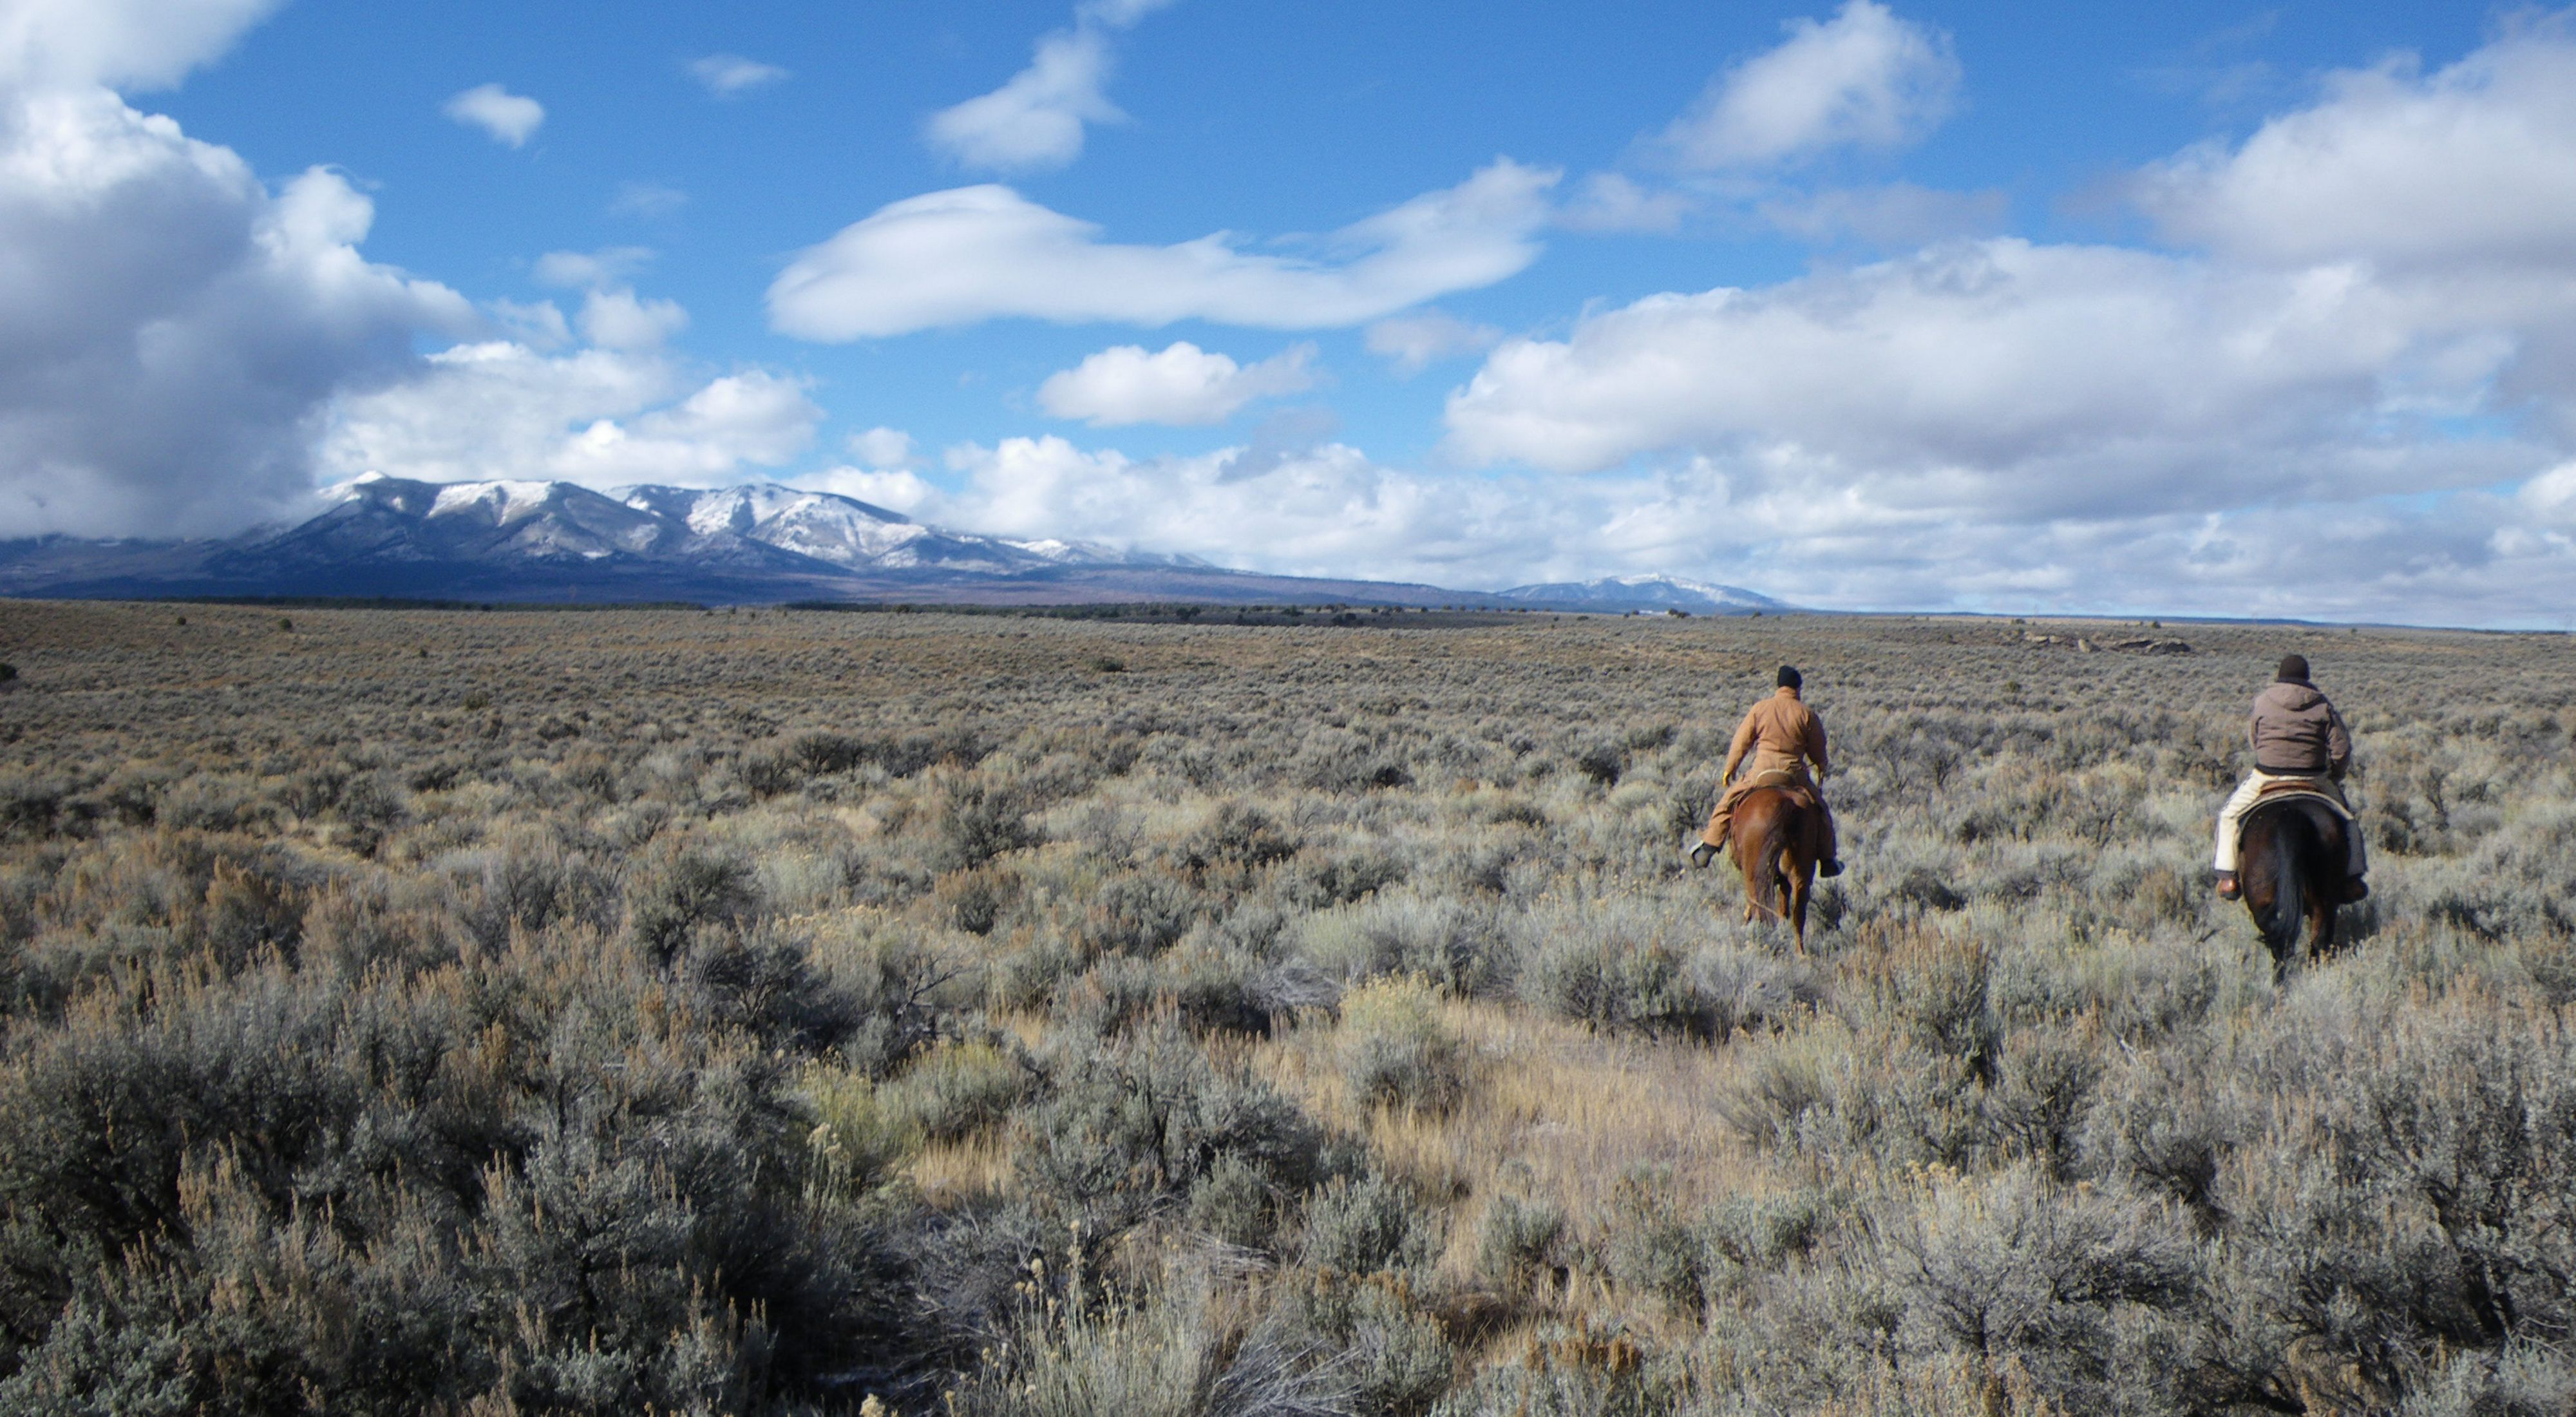 View of protected critical habitat for the Gunnison sage-grouse.